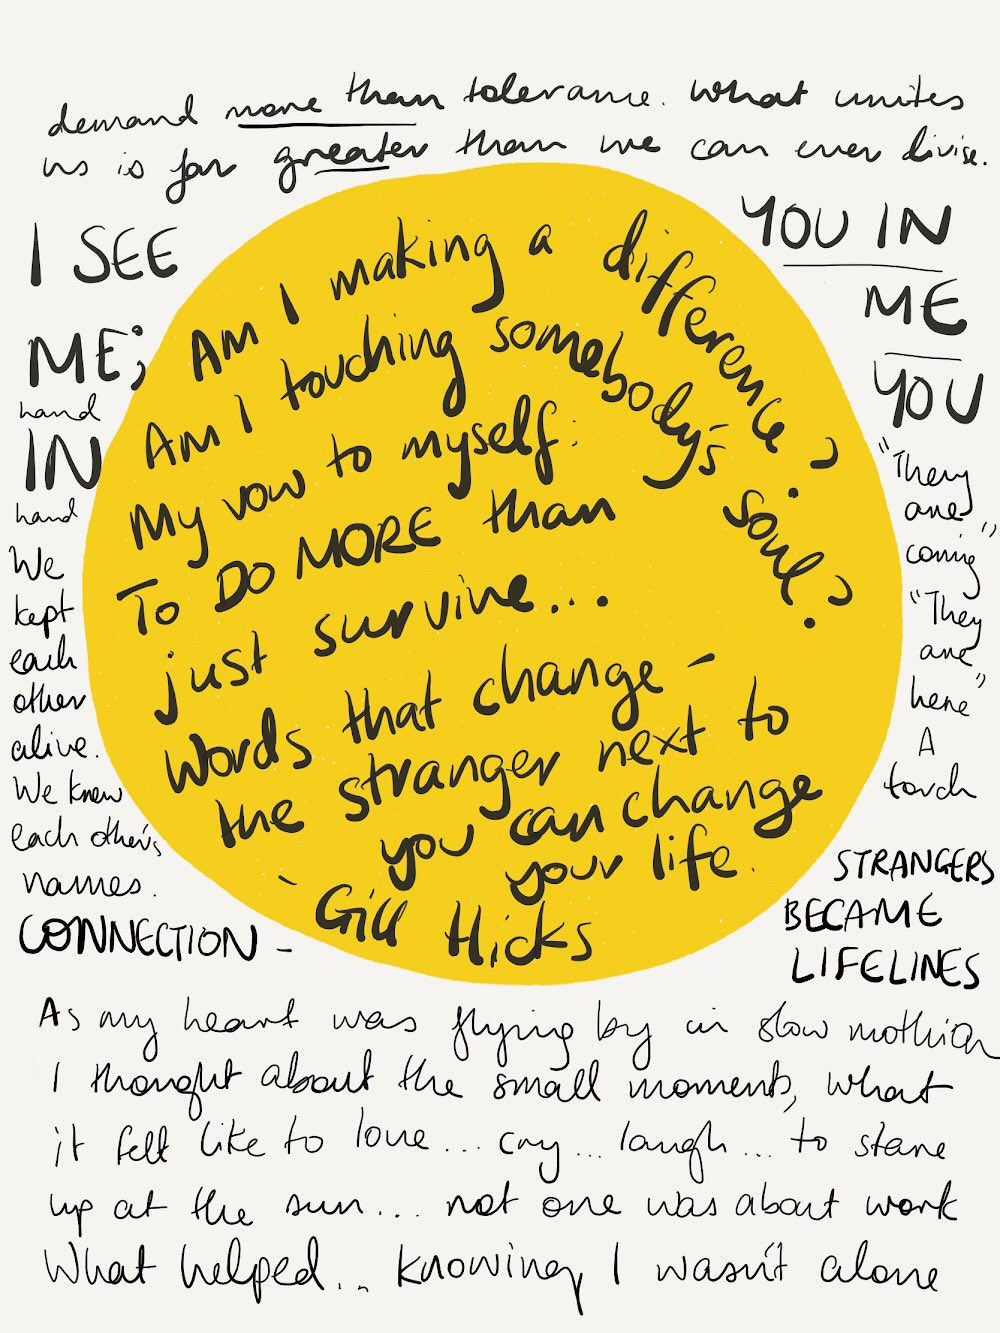 Am I making a difference? Words that Change - Gill Hicks